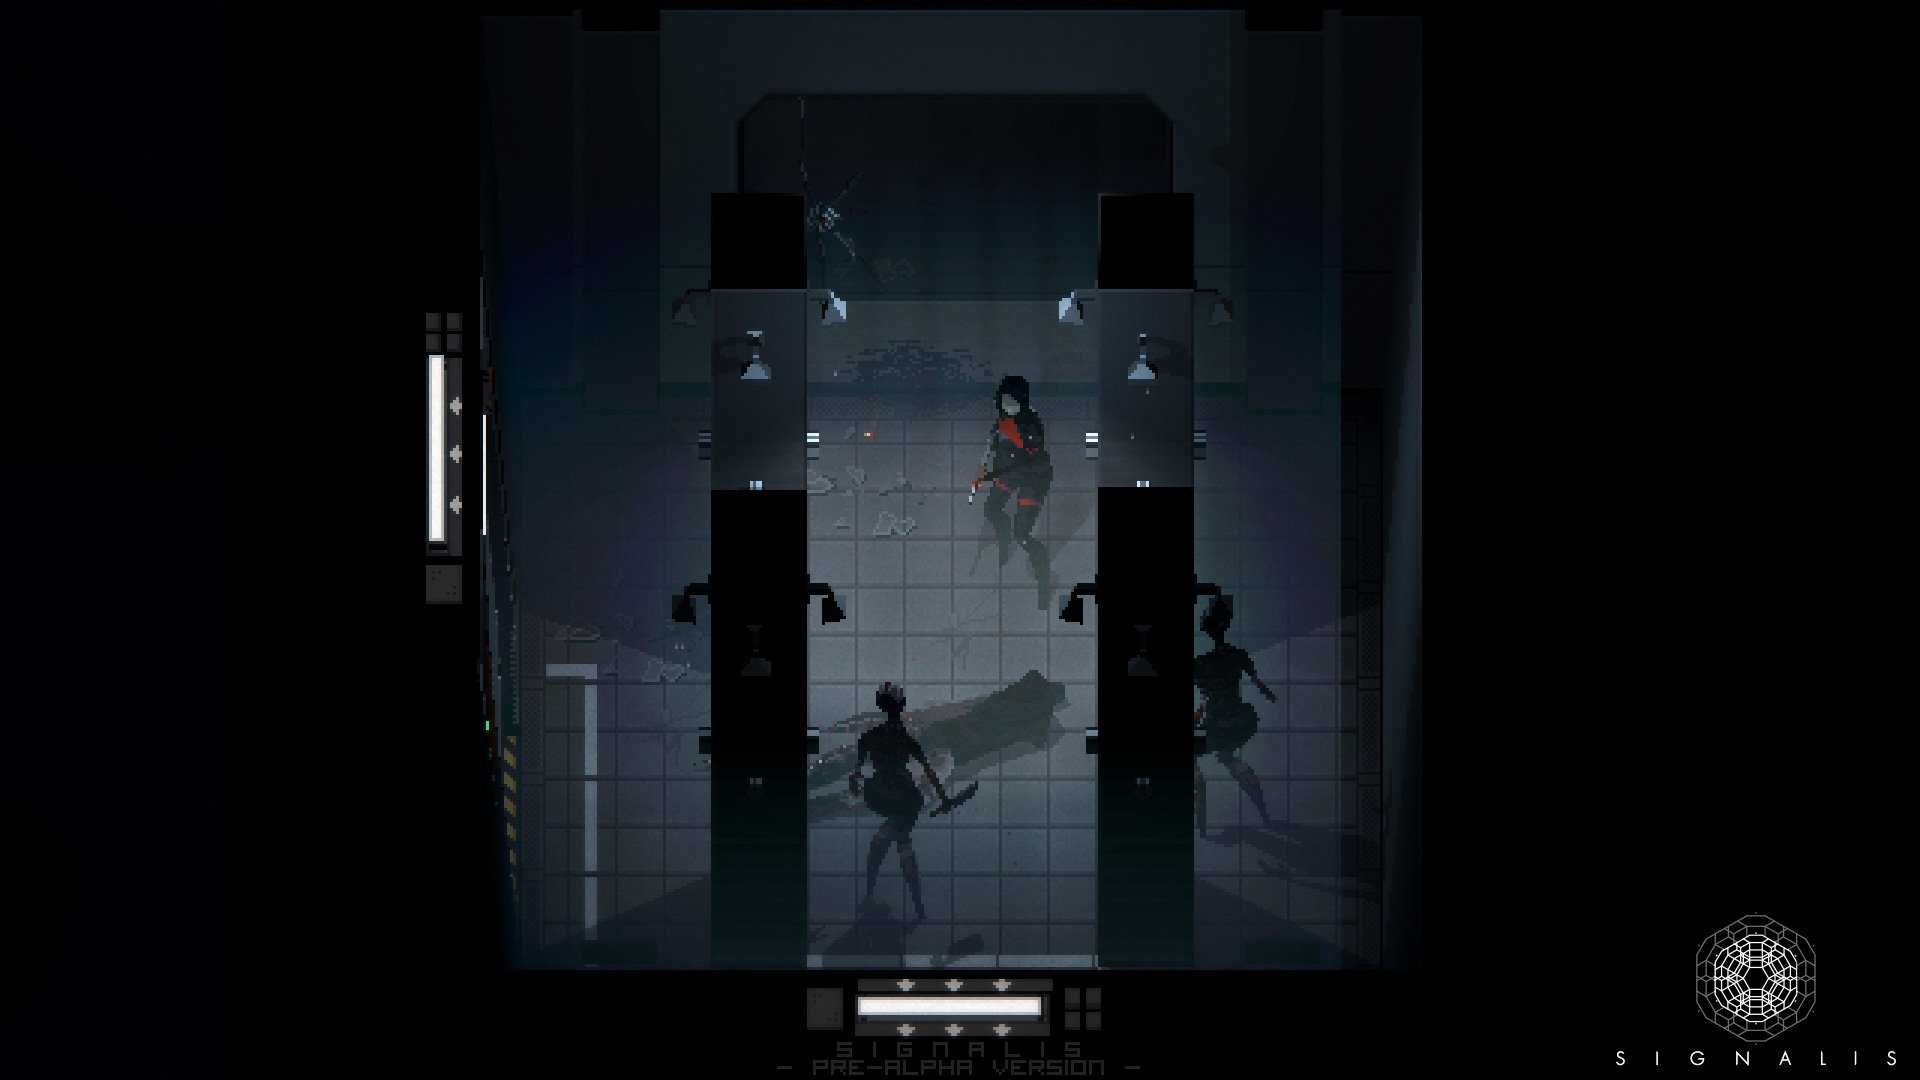 Signalis is a sci-fi survival horror game worth following screenshot